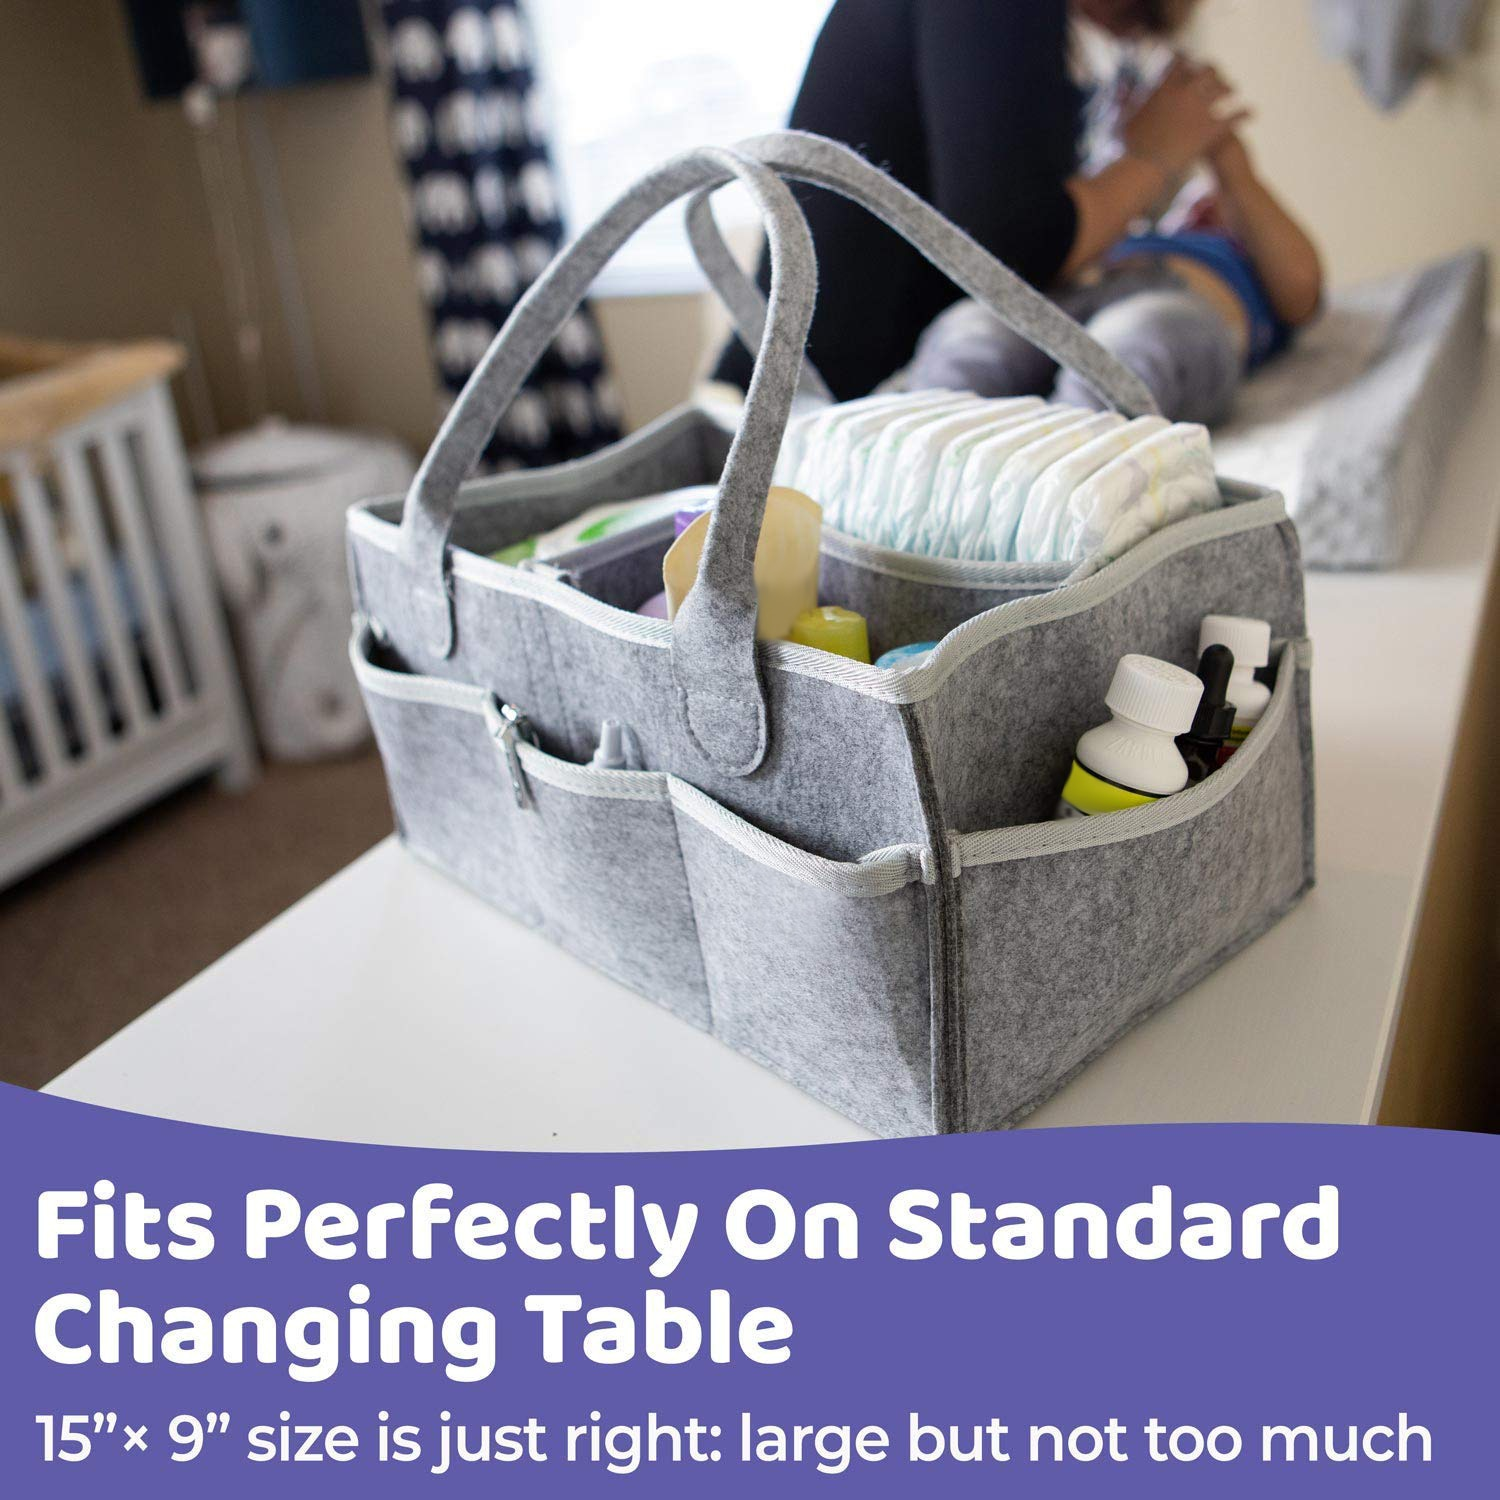 Baby Diaper Caddy Organizer Portable Holder Bag for Changing Table and Car, Nursery Essentials Storage bins 38*23*18cm